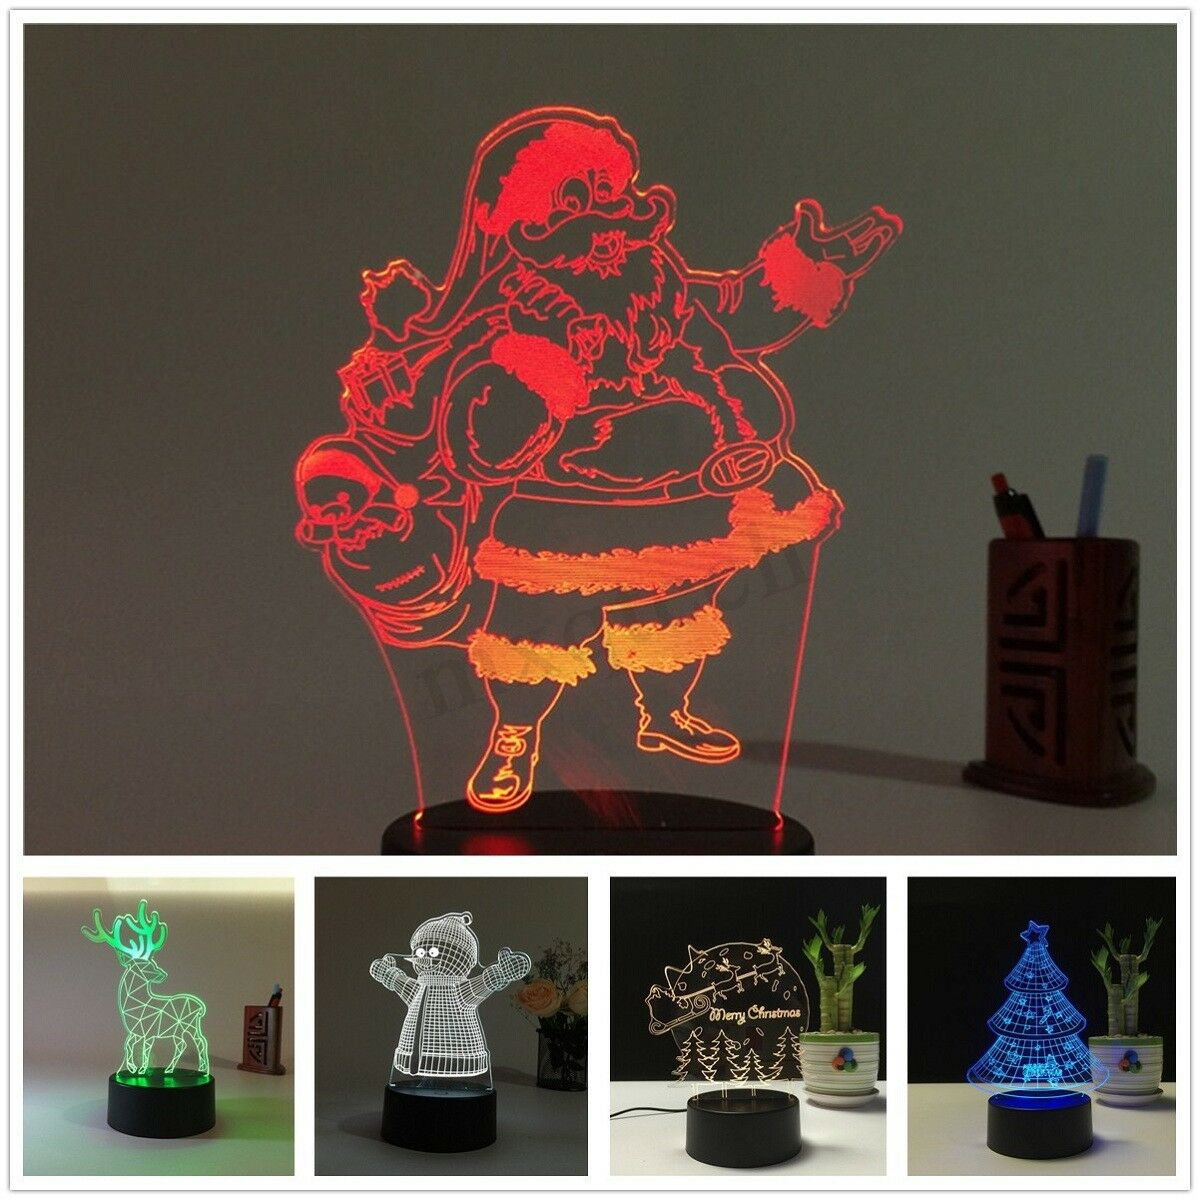 3D LED Illusion Night Light 7Color Touch Table Desk Lamp Bedroom Decor Xmas Gift